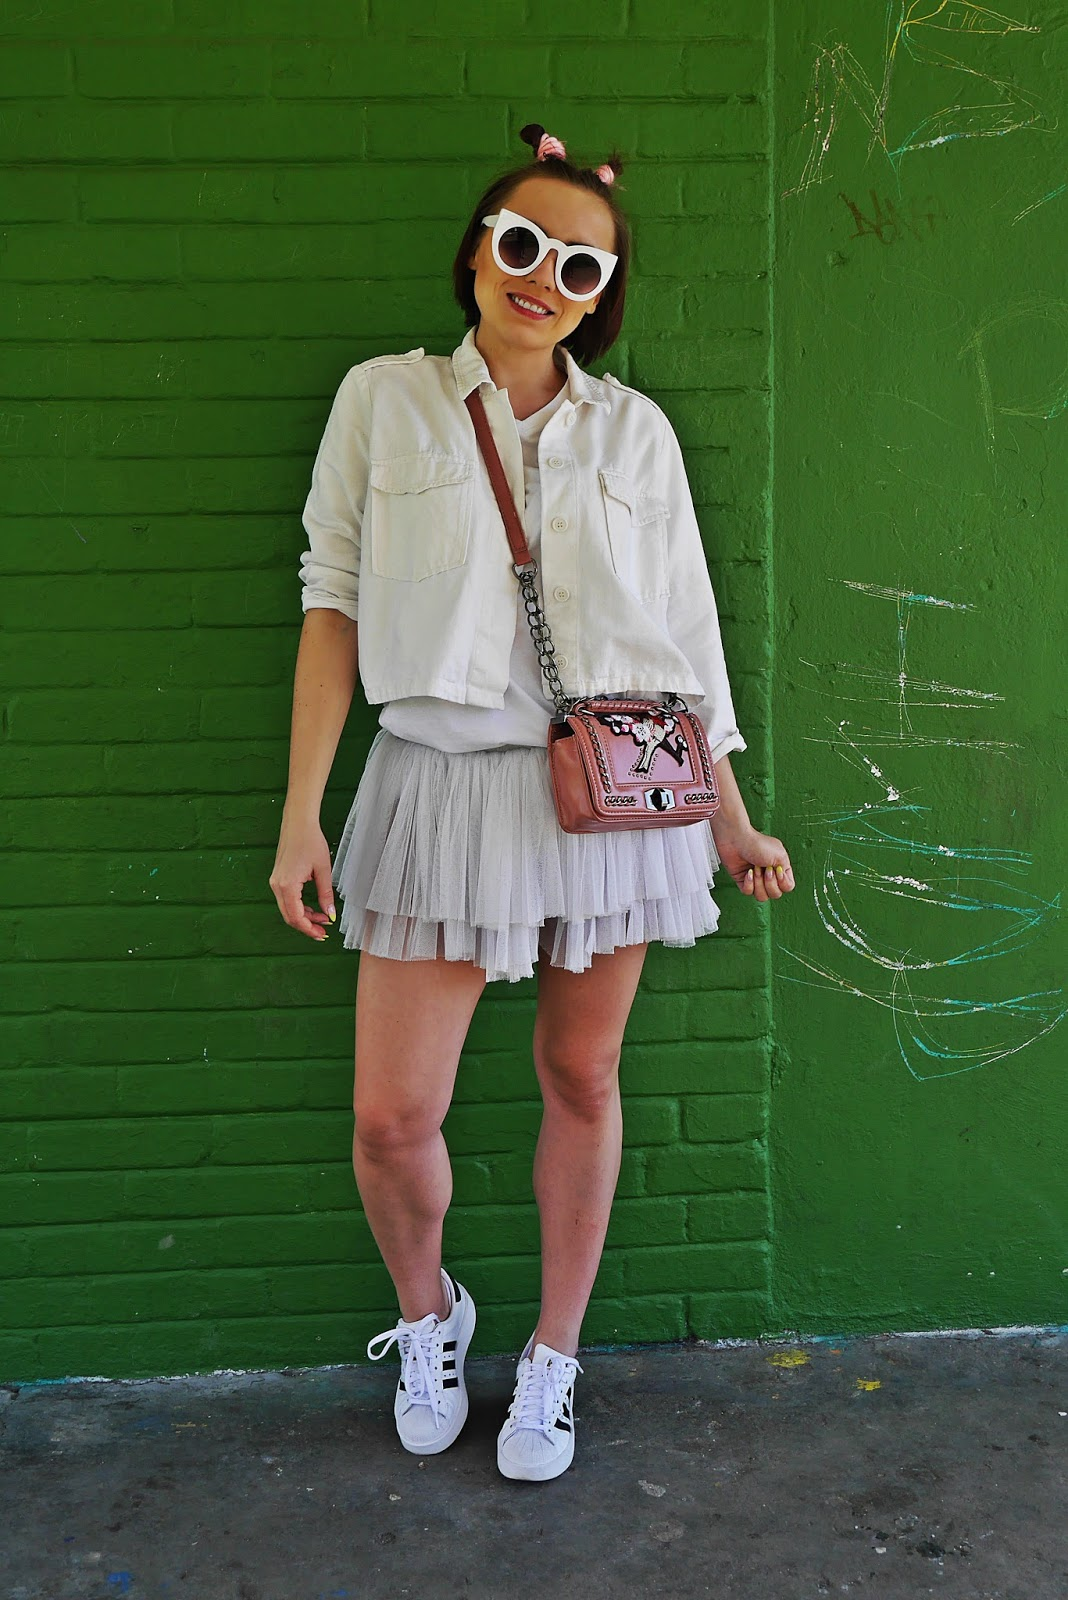 6-biala_kurtka_adidas_superstar_white_total_look_karyn_blog_modowy_160418